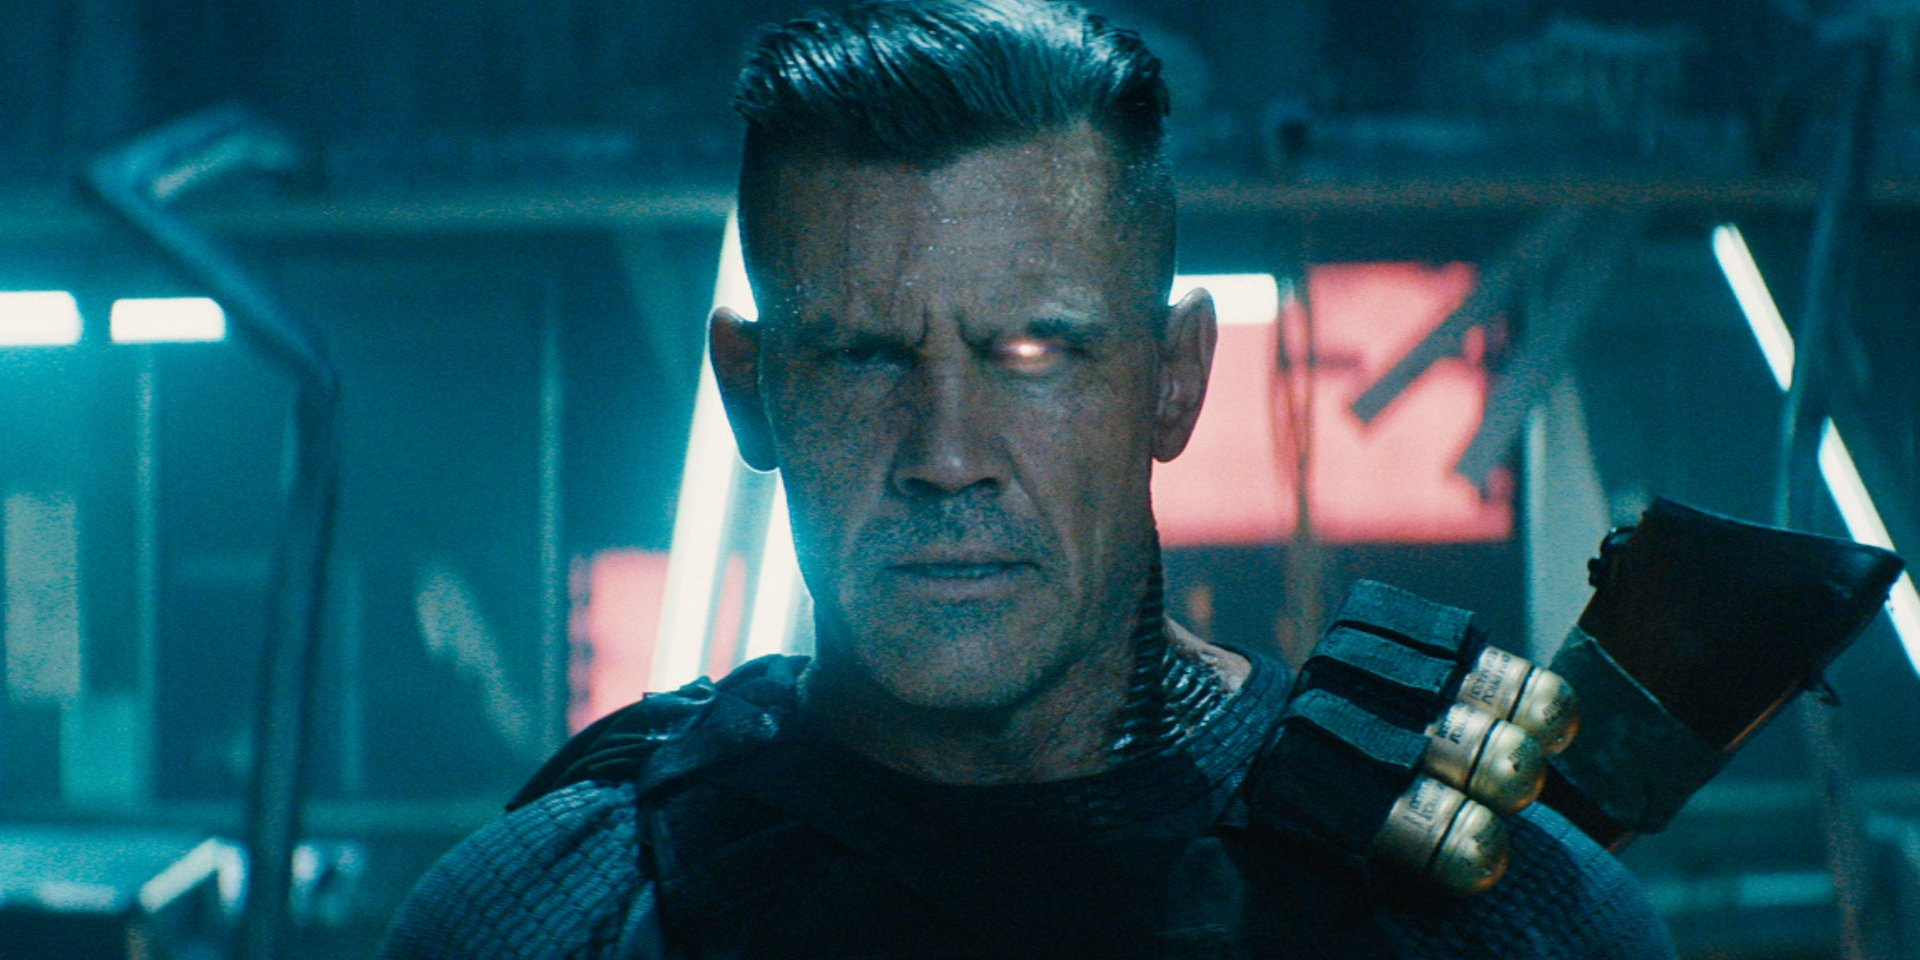 Josh Brolin Deadpool 2 review